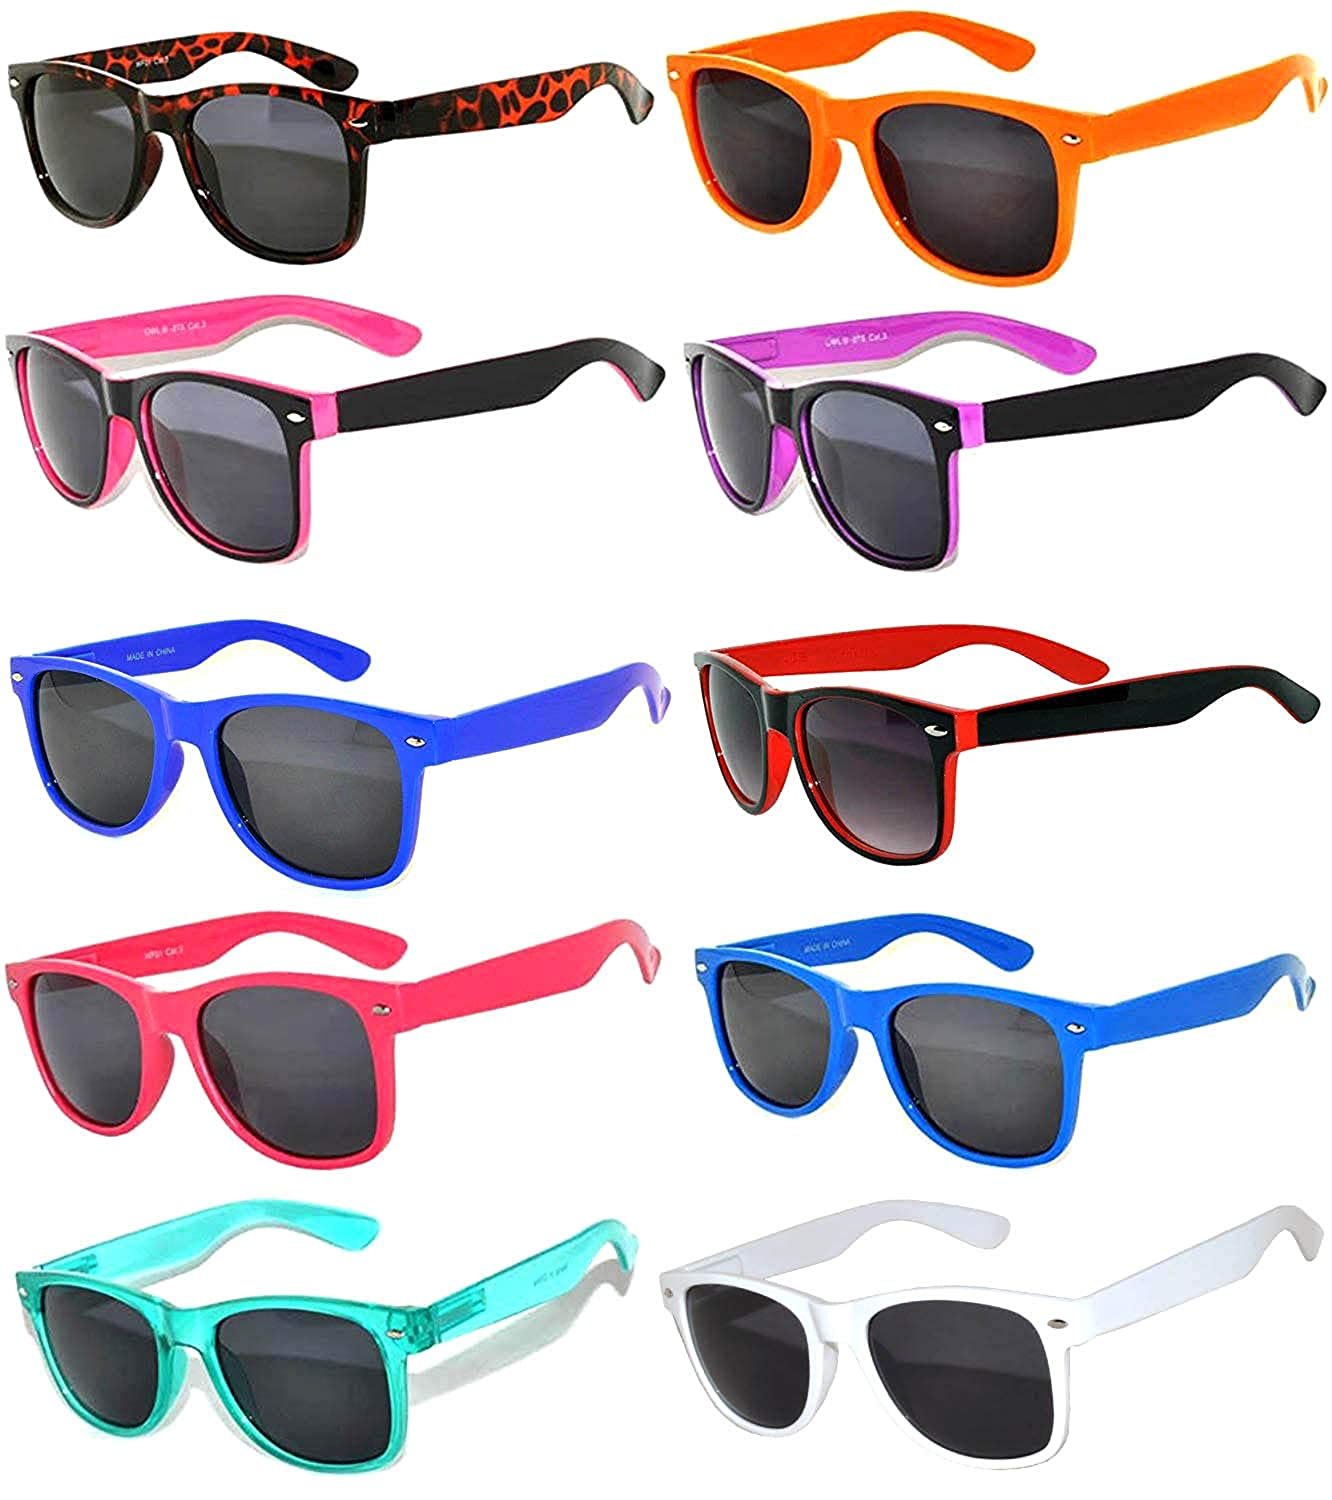 9d4a847787d Amazon.com  Wholesale of 12 Pack Mixed colored Frame Vintage Smoke Lens  Eyeglasses OWL  Clothing